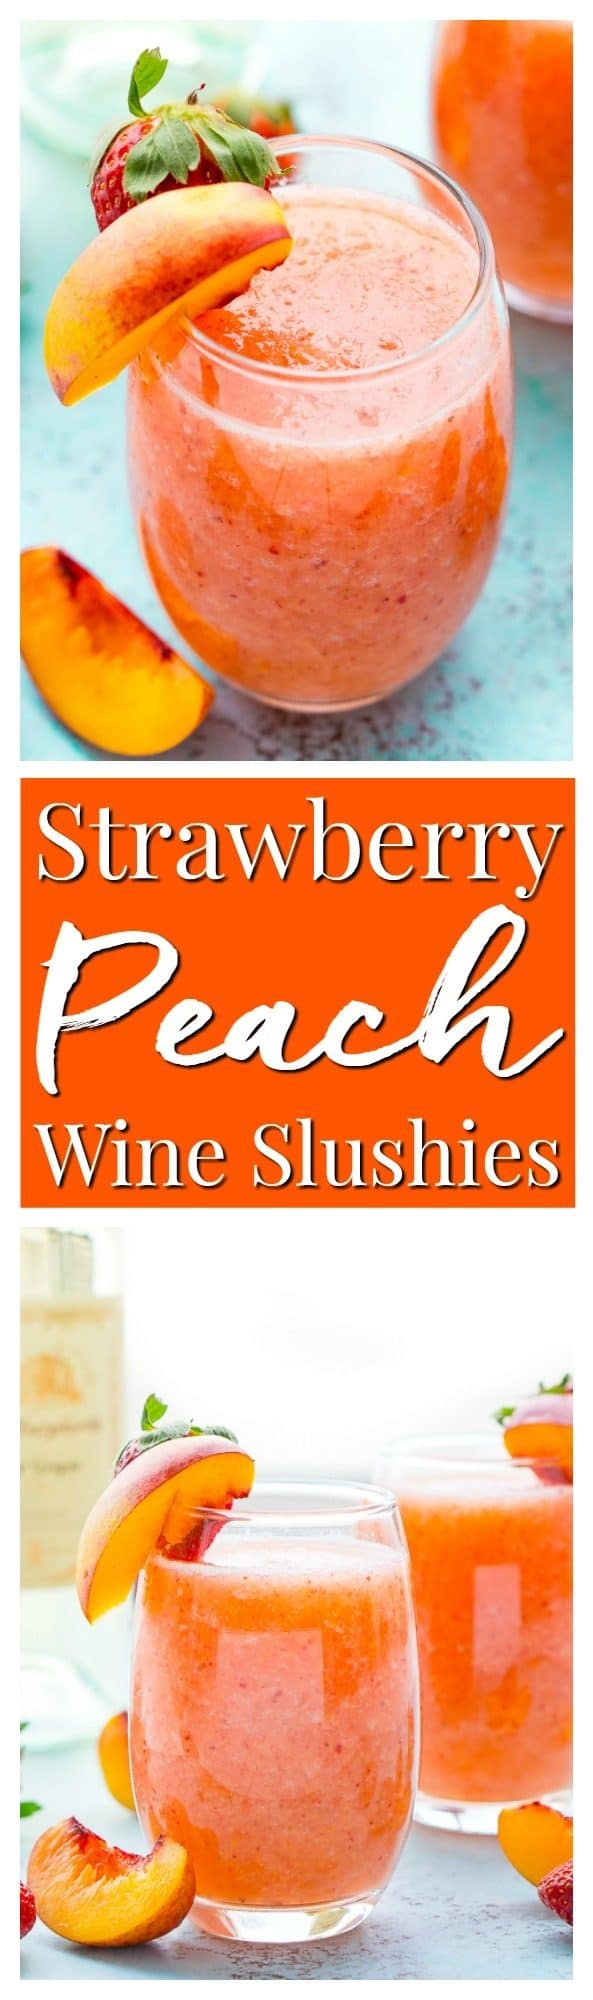 Strawberry Peach Wine Slushies aremade with just a few ingredients and a blender. Mix them up for a night with the girls or a summer day by the pool!